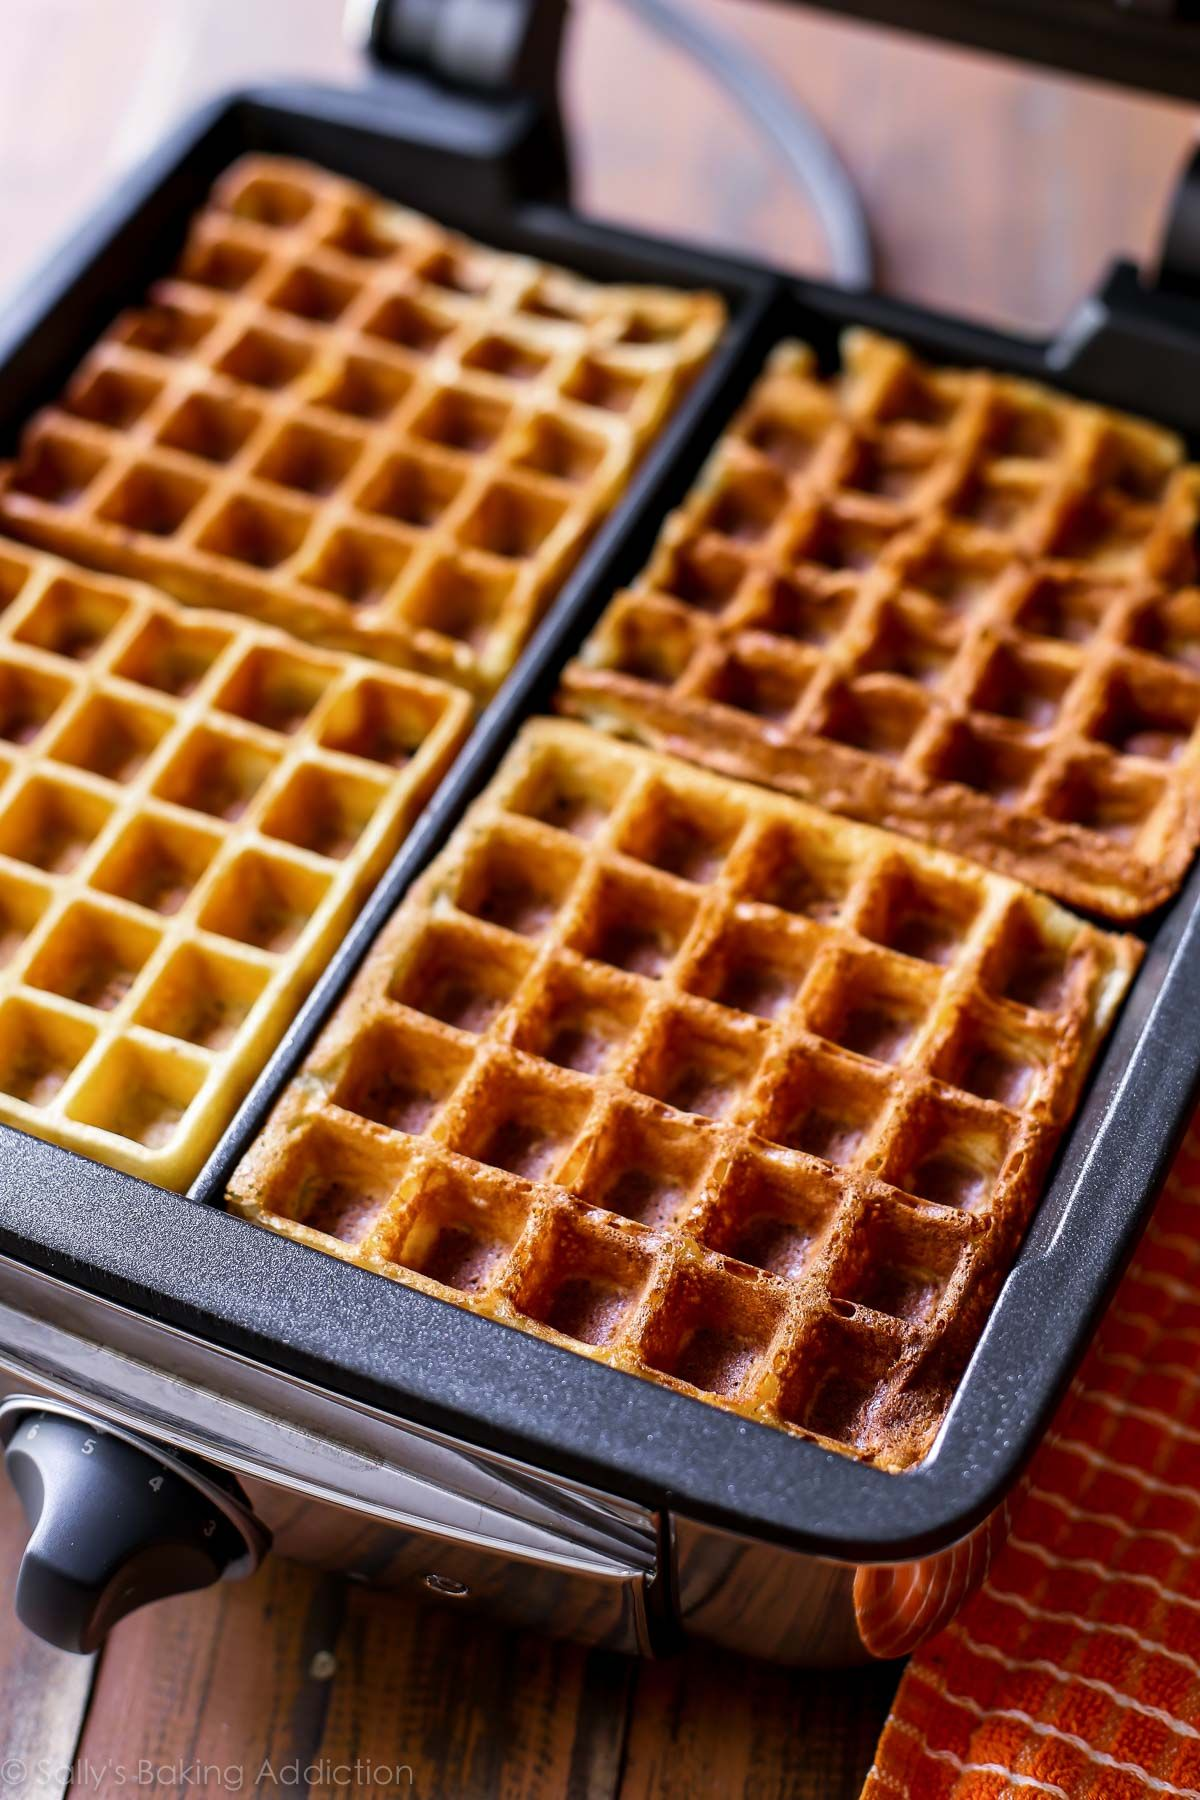 My Favorite Buttermilk Waffles Are Delightfully Crisp On The Outside And Light As Air On The Inside Buttermilk Waffles Waffle Recipes Buttermilk Waffles Recipe